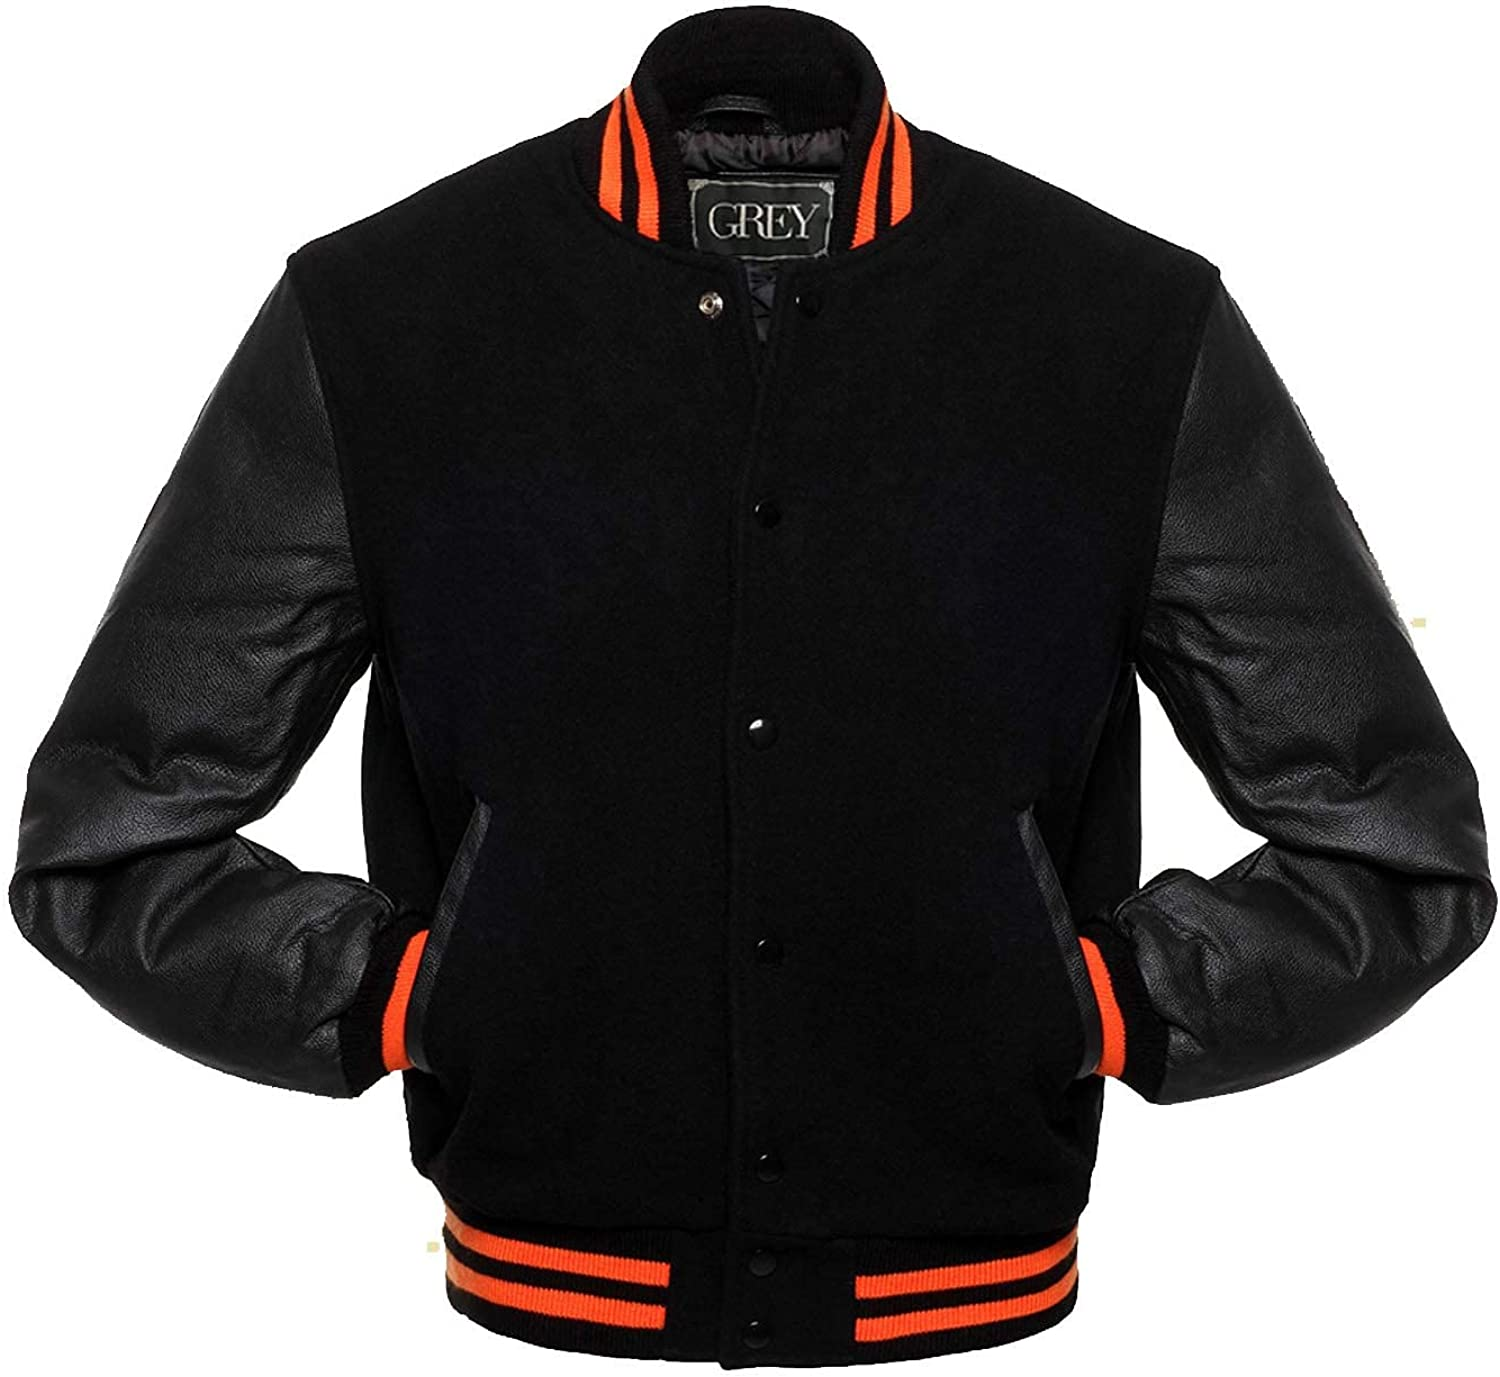 GREY Brand Varsity Jacket, Wool Body with Leather Arms Letterman Baseball Unique & Stylish (4XL)